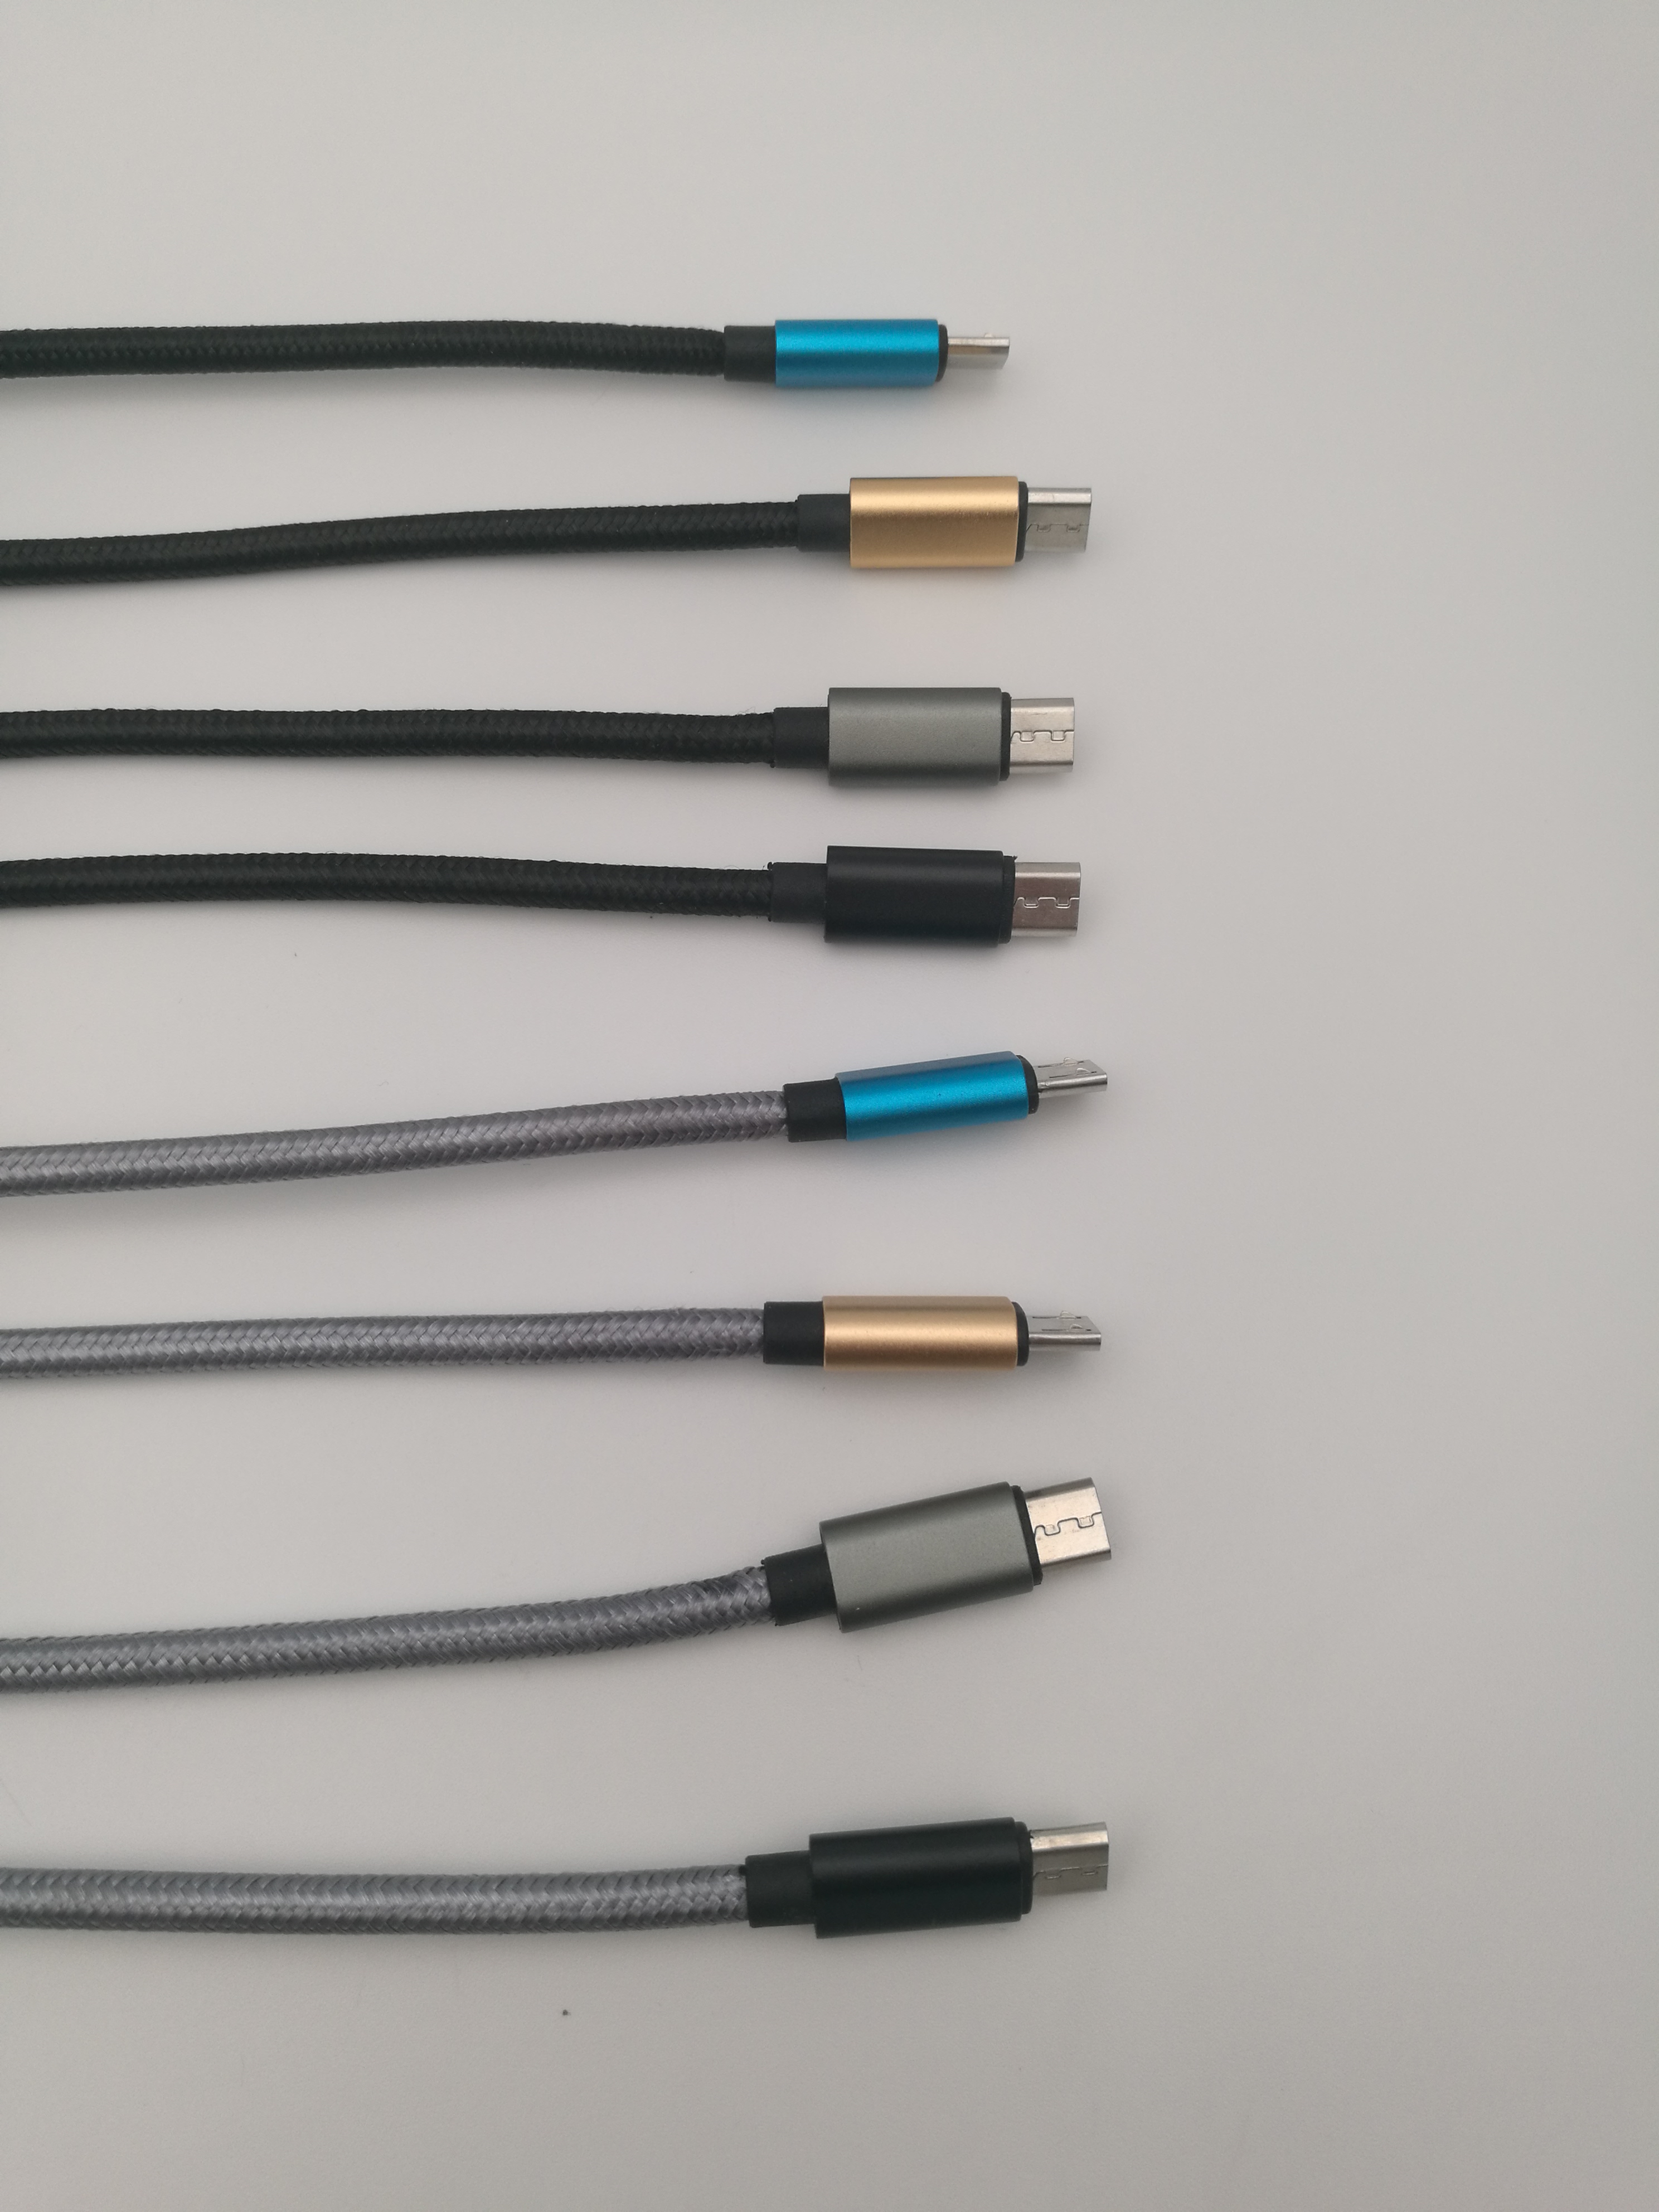 Short USB Cable Nylon 안드로이드 USB 3.0 Cable 3A 20 센치메터 Fast Charging Cable 대 한 주 폰 대 한 jio 폰